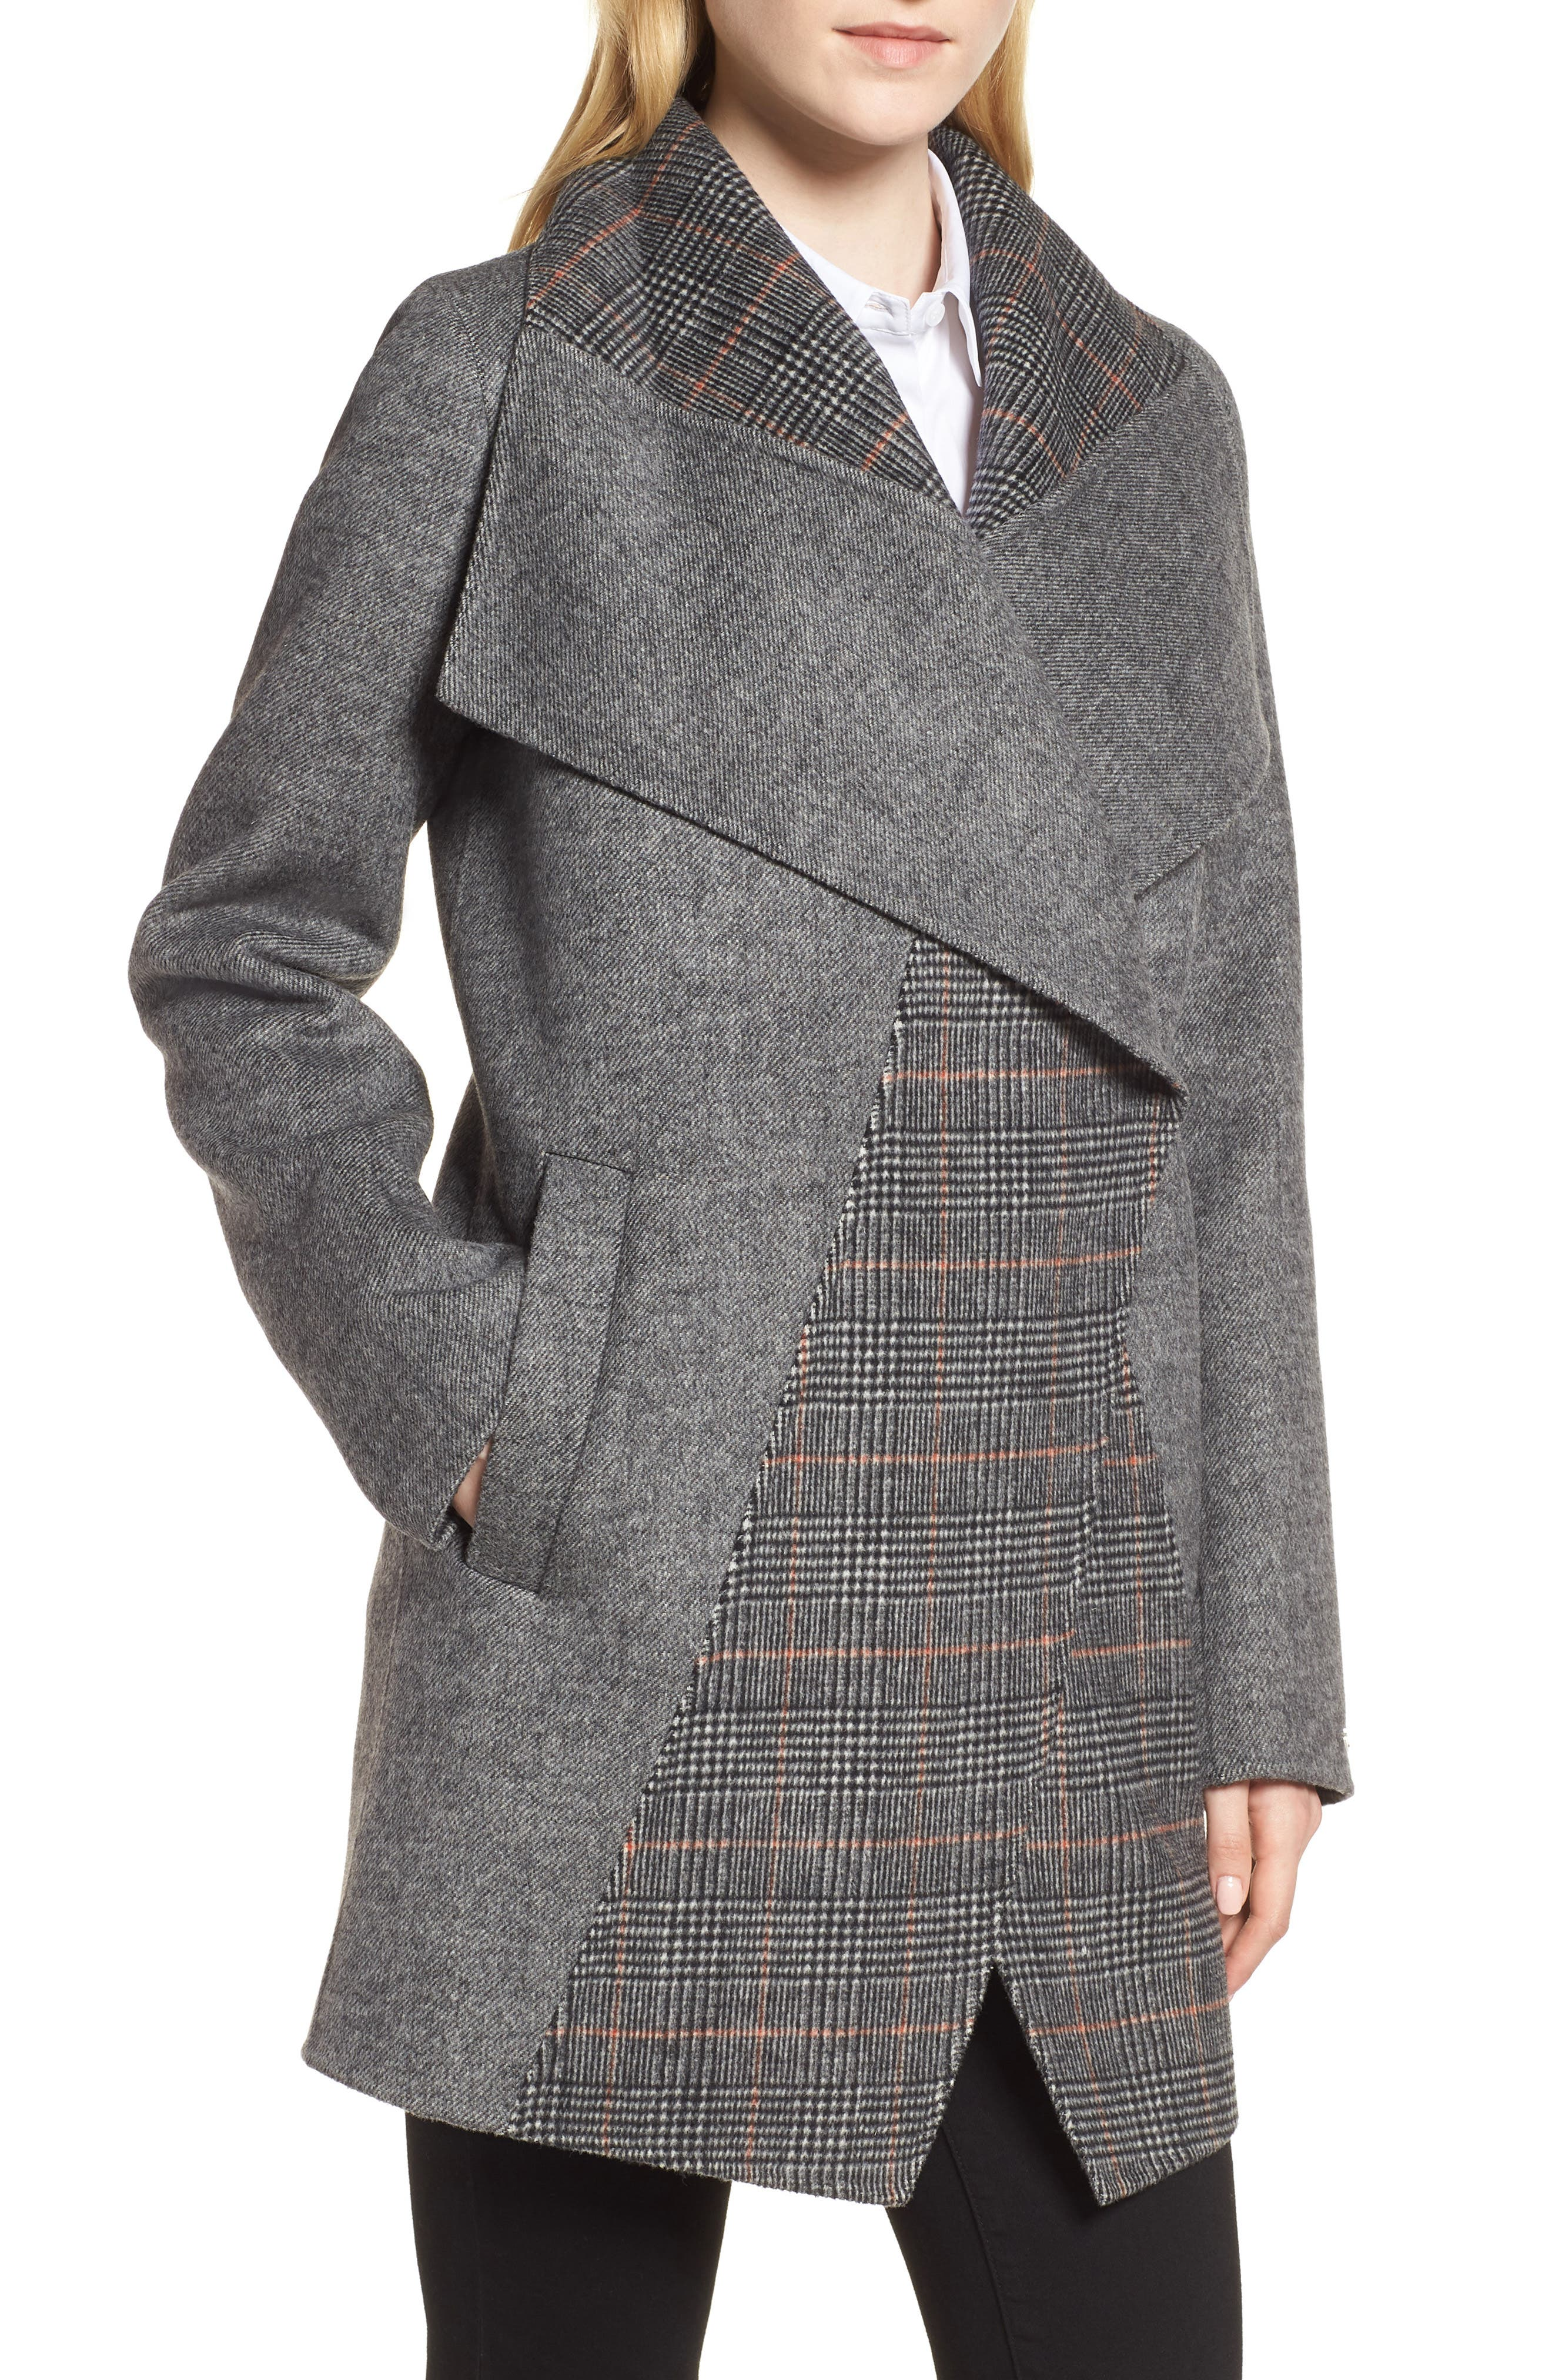 Nicky Double Face Wool Blend Oversize Coat,                             Main thumbnail 1, color,                             GREY COMBO TWILL/ PLAID